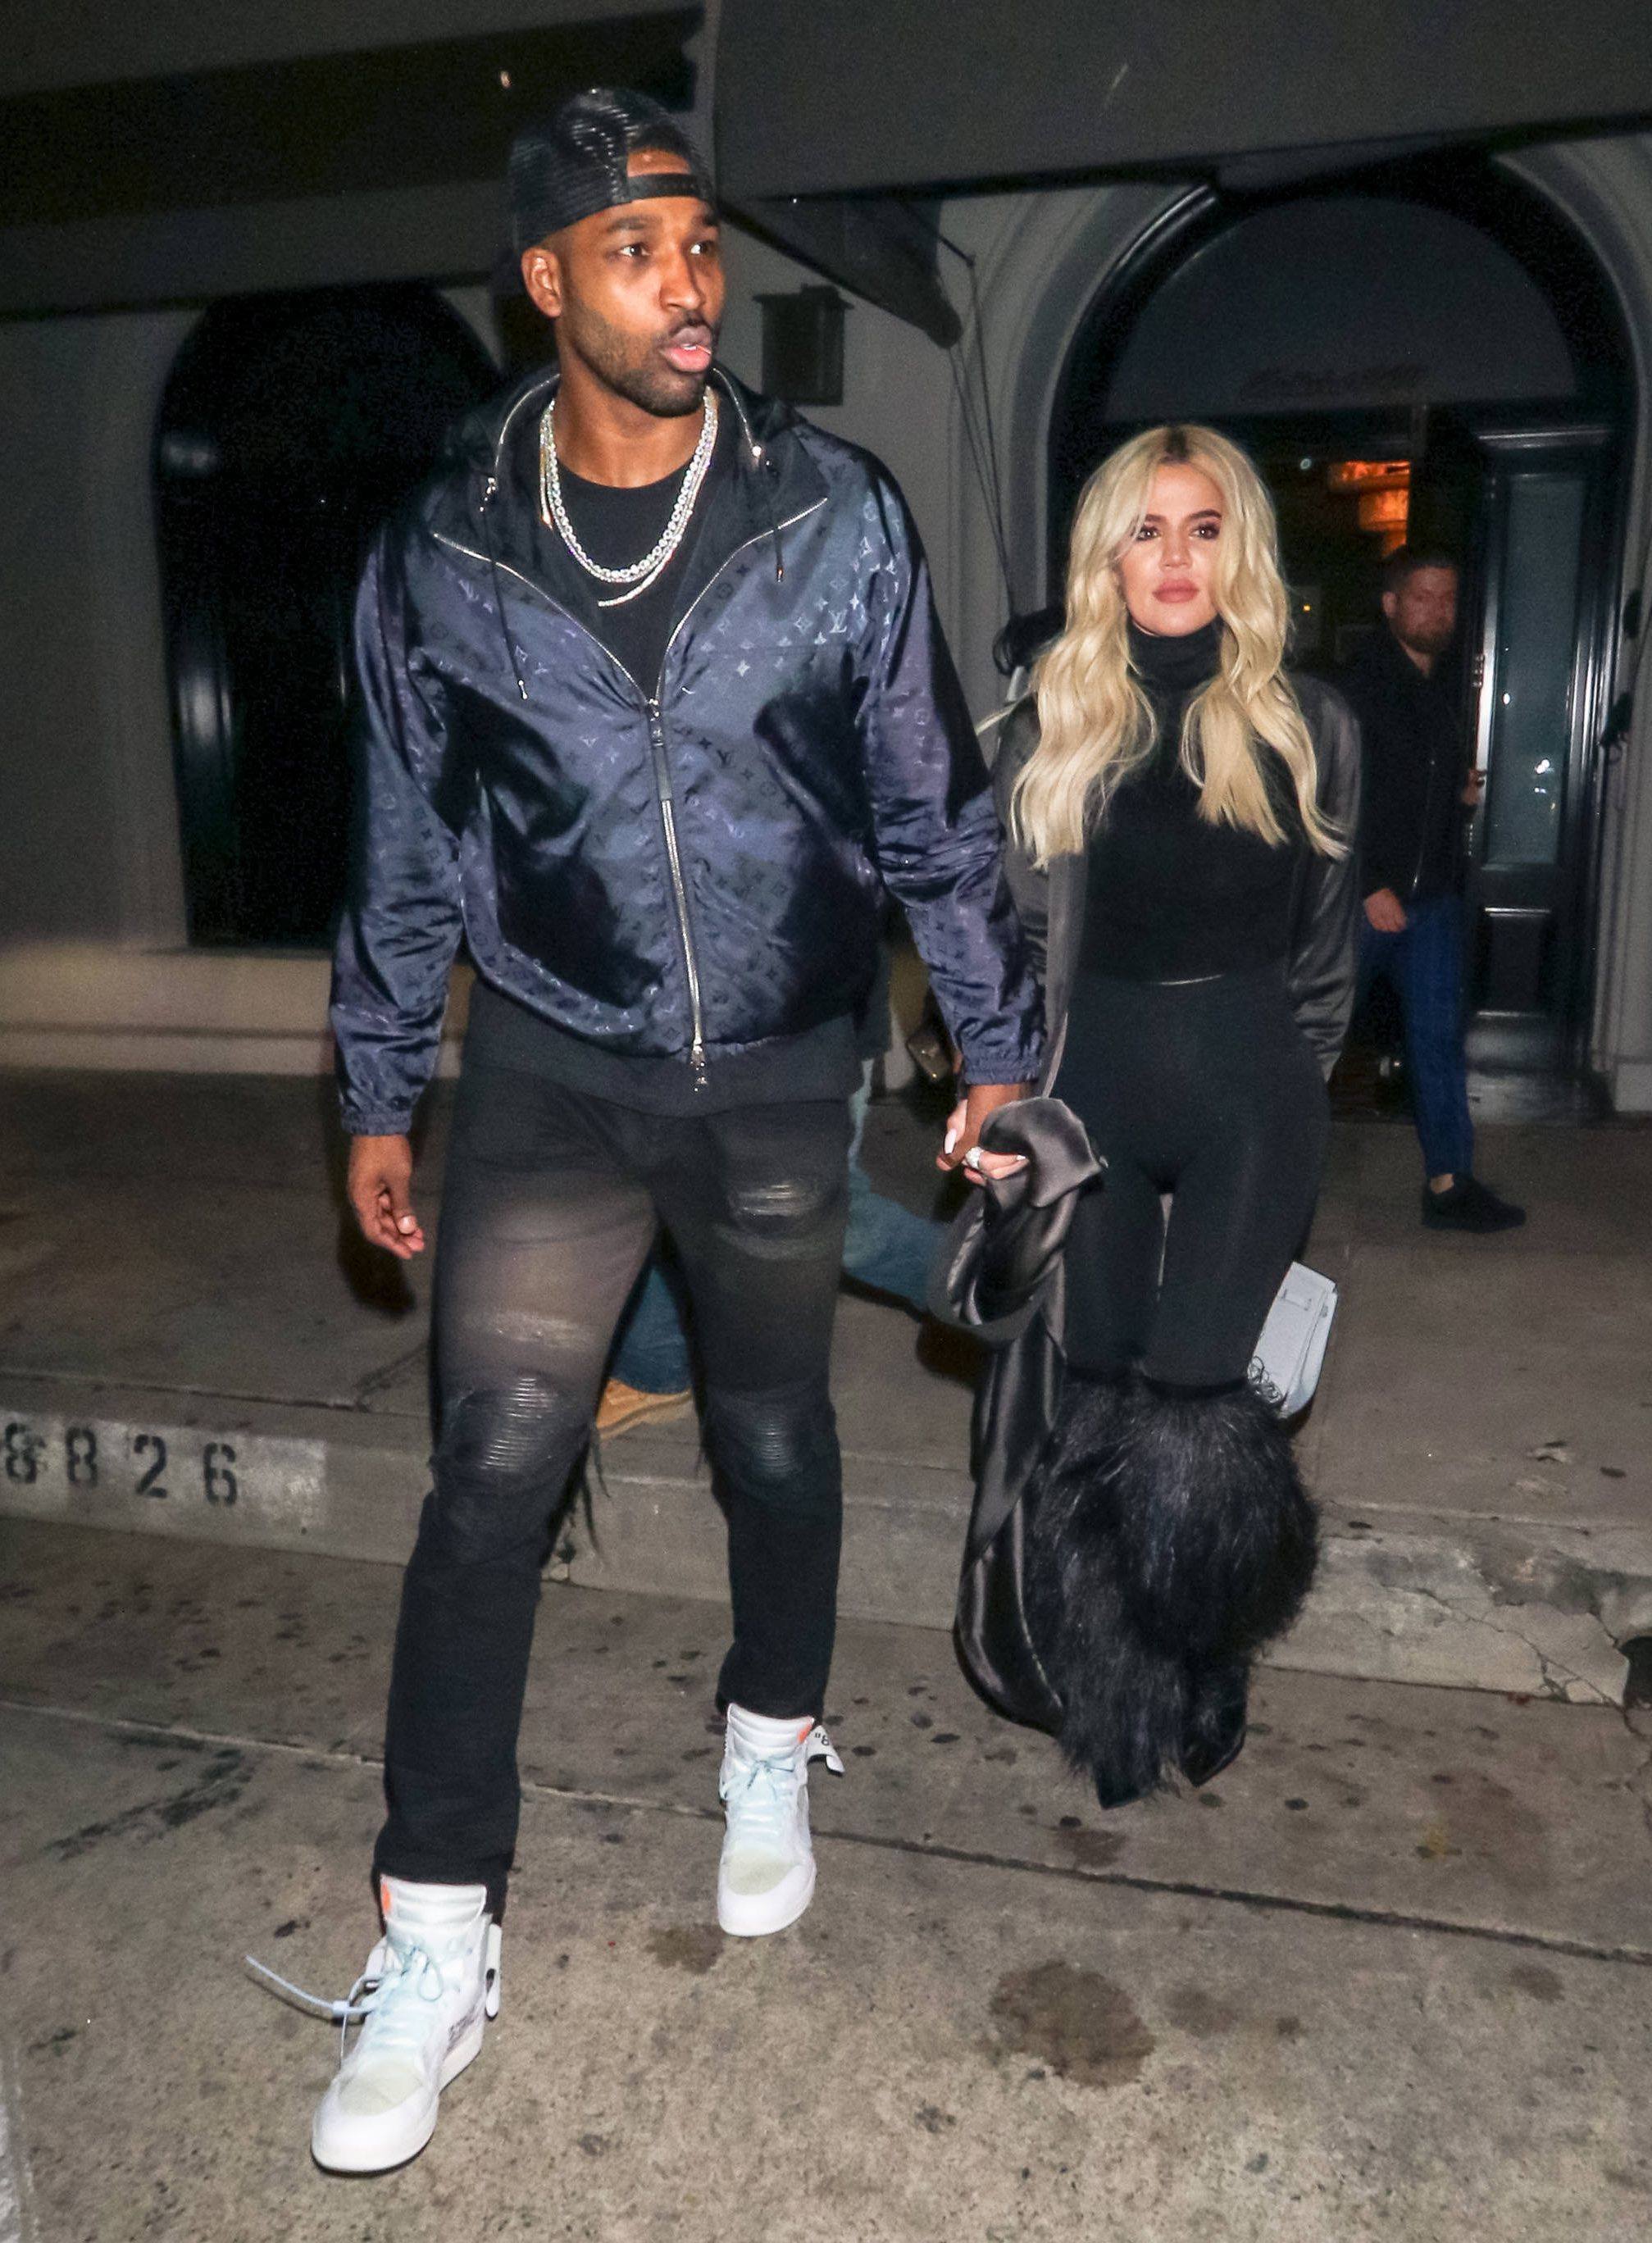 f2d6921a9d Khloe Kardashian and Tristan Thompson split following second cheating  scandal, plus more celeb love life news for mid-February 2019